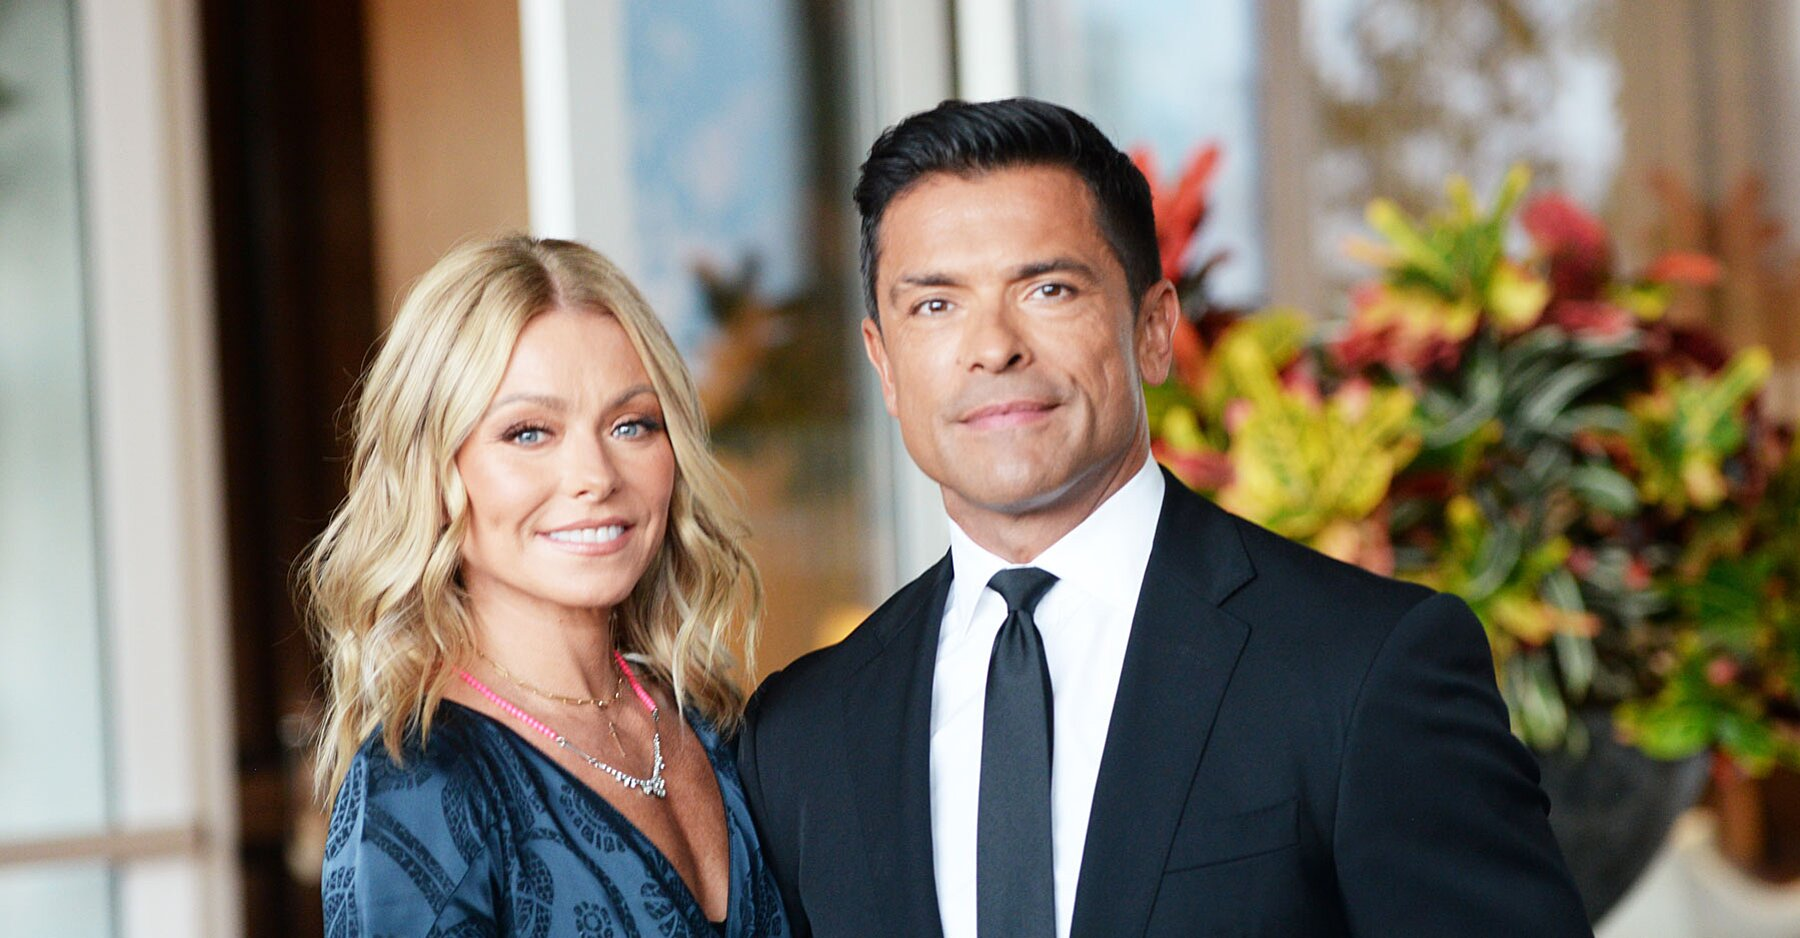 Kelly Ripa and Mark Consuelos' Vacation Turned Into a Months-long Caribbean Quarantine